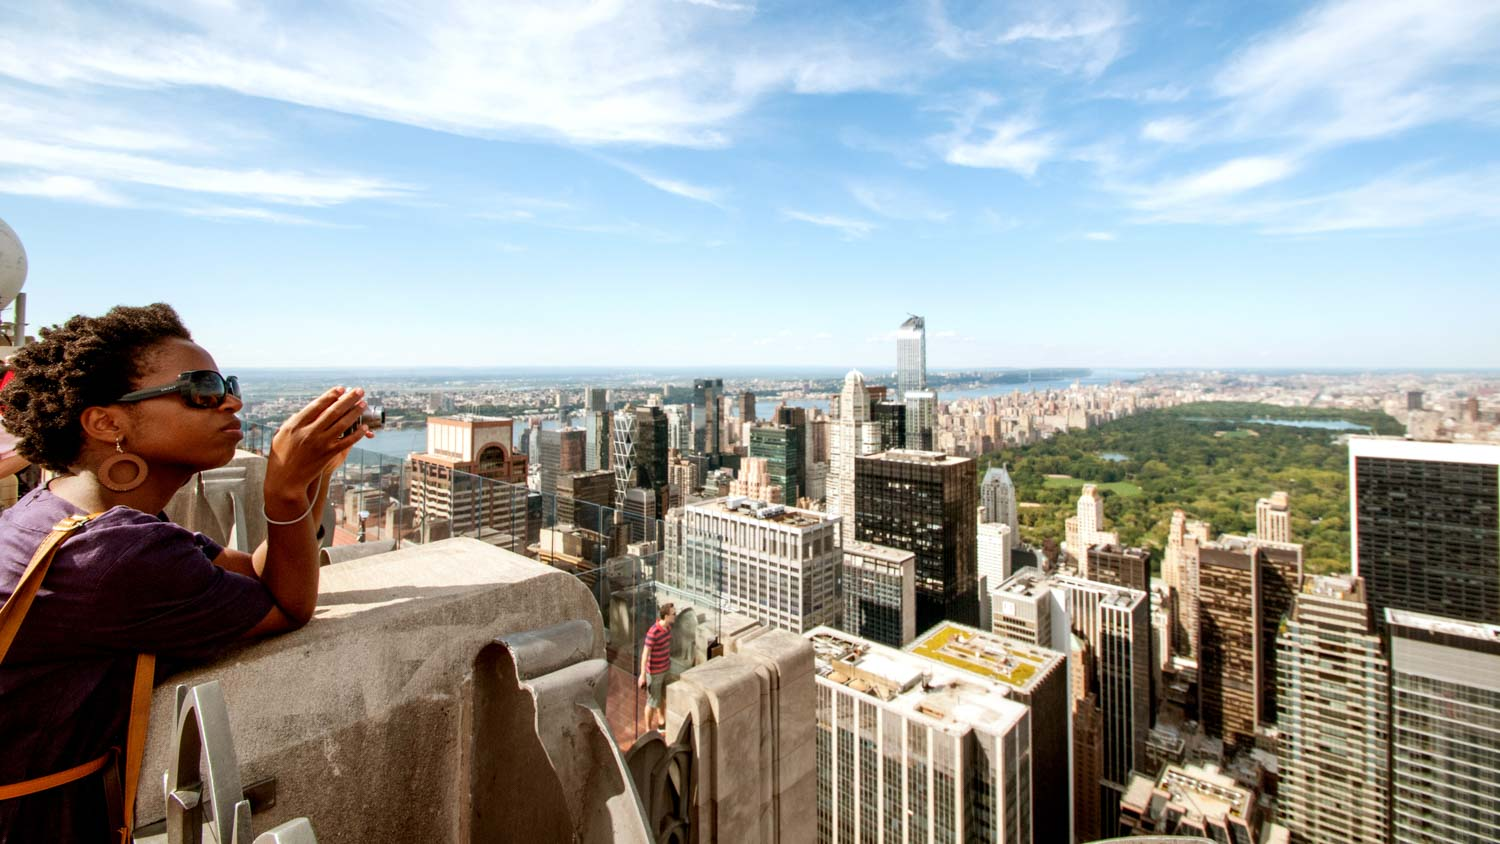 Une des attractions les plus vivantes de Manhattan